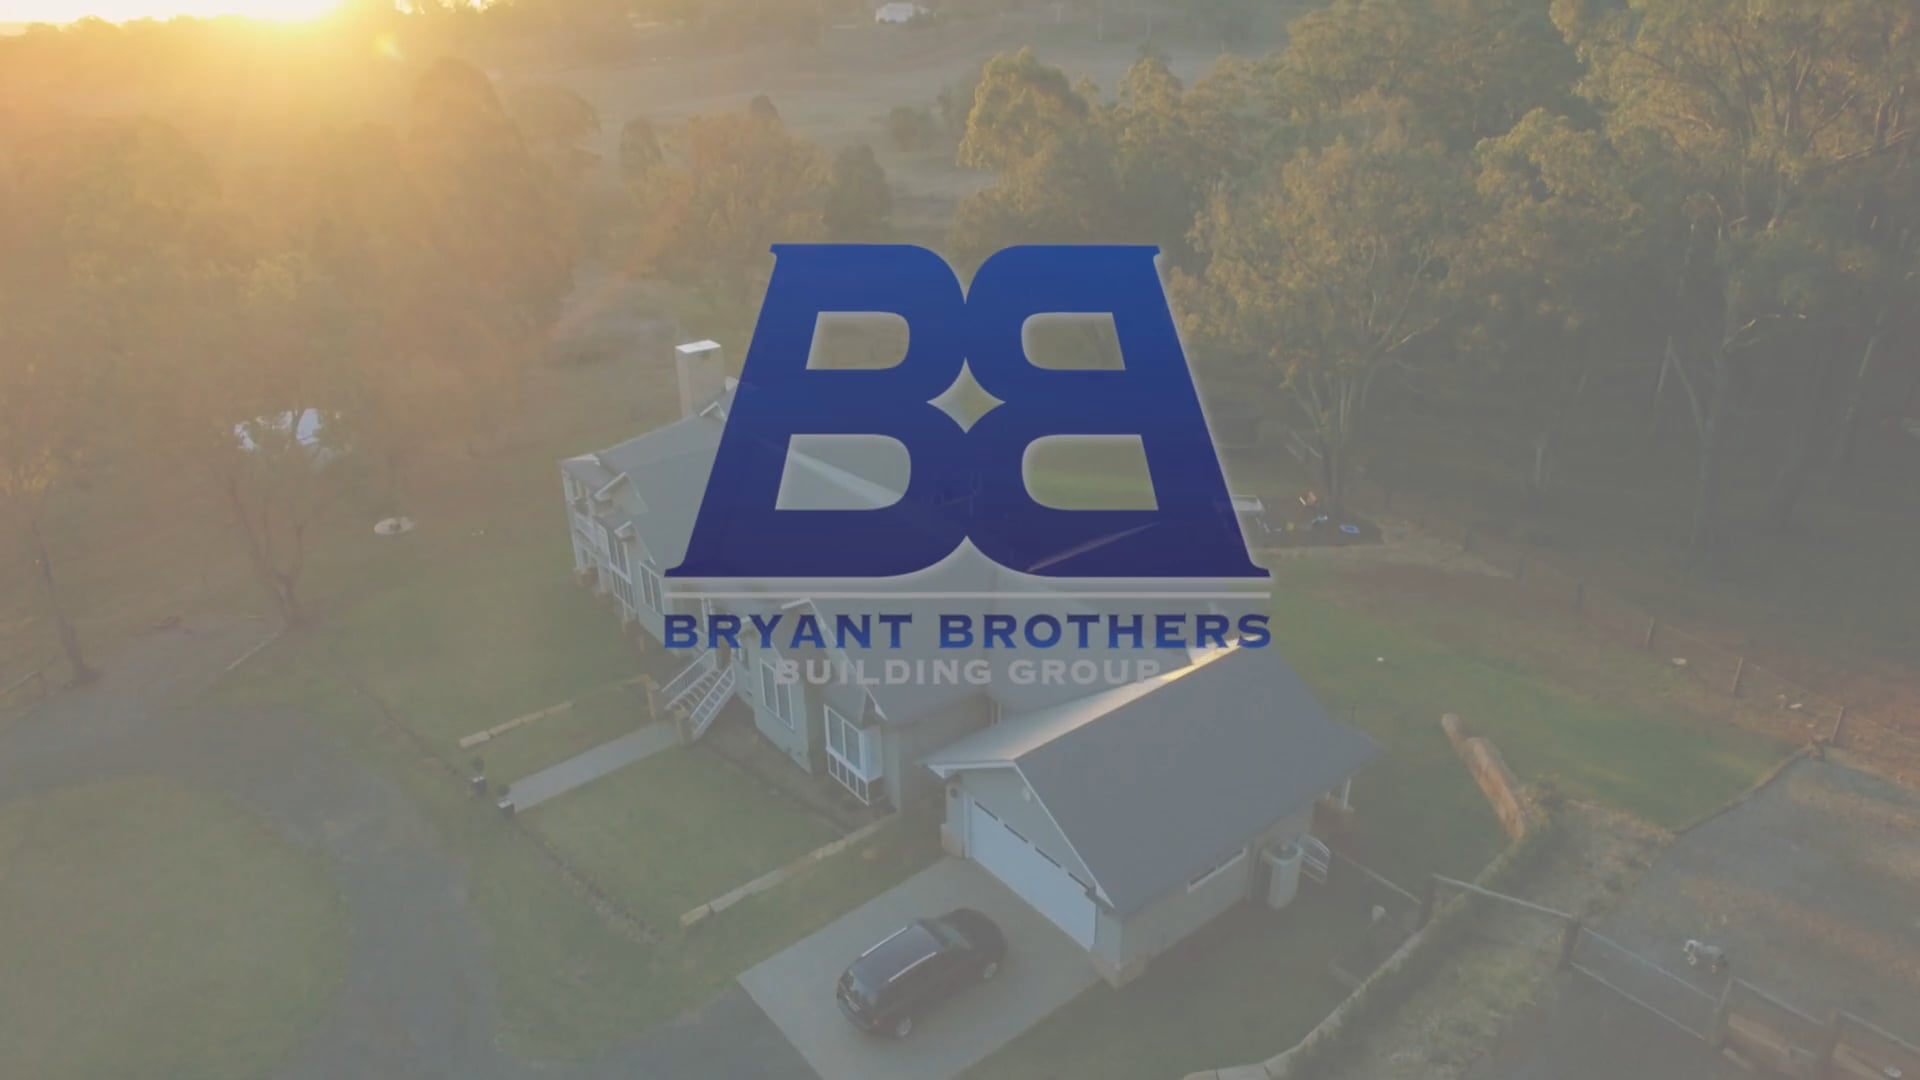 Bryant Brothers